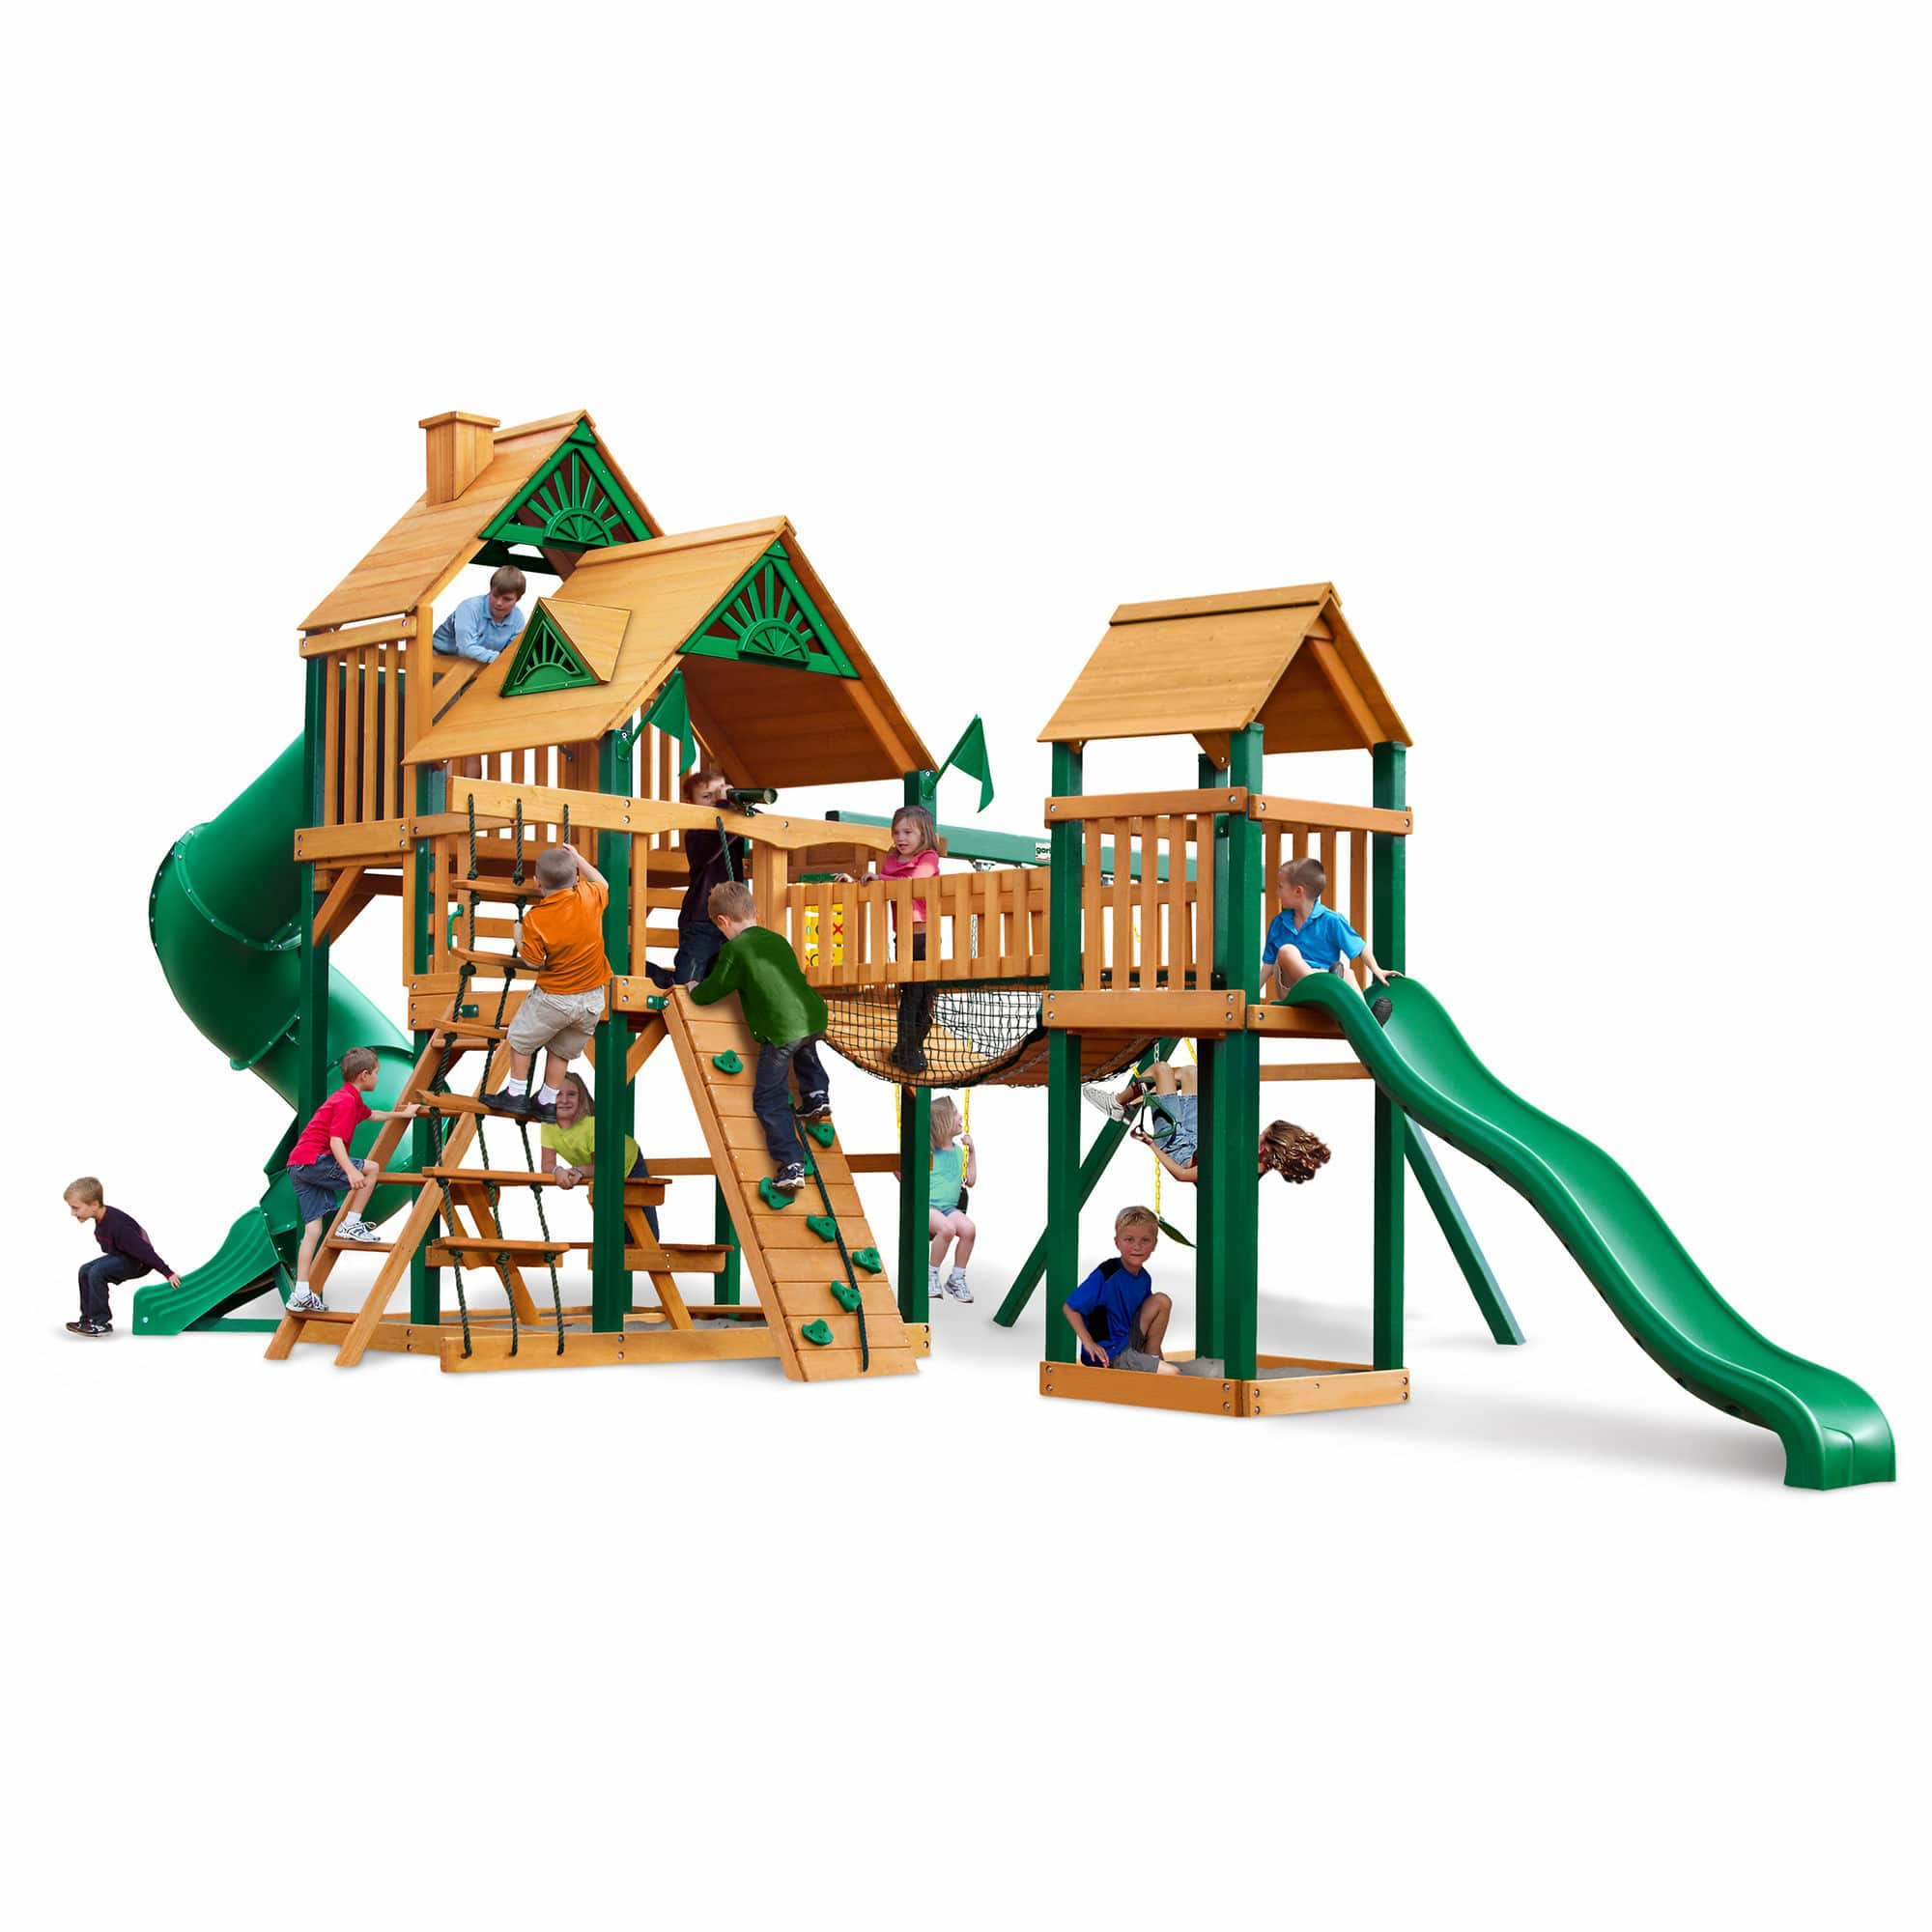 Swing Sets on sale at BJS.com, up to $1000 off. Treasure Trove $2400. all with free shipping